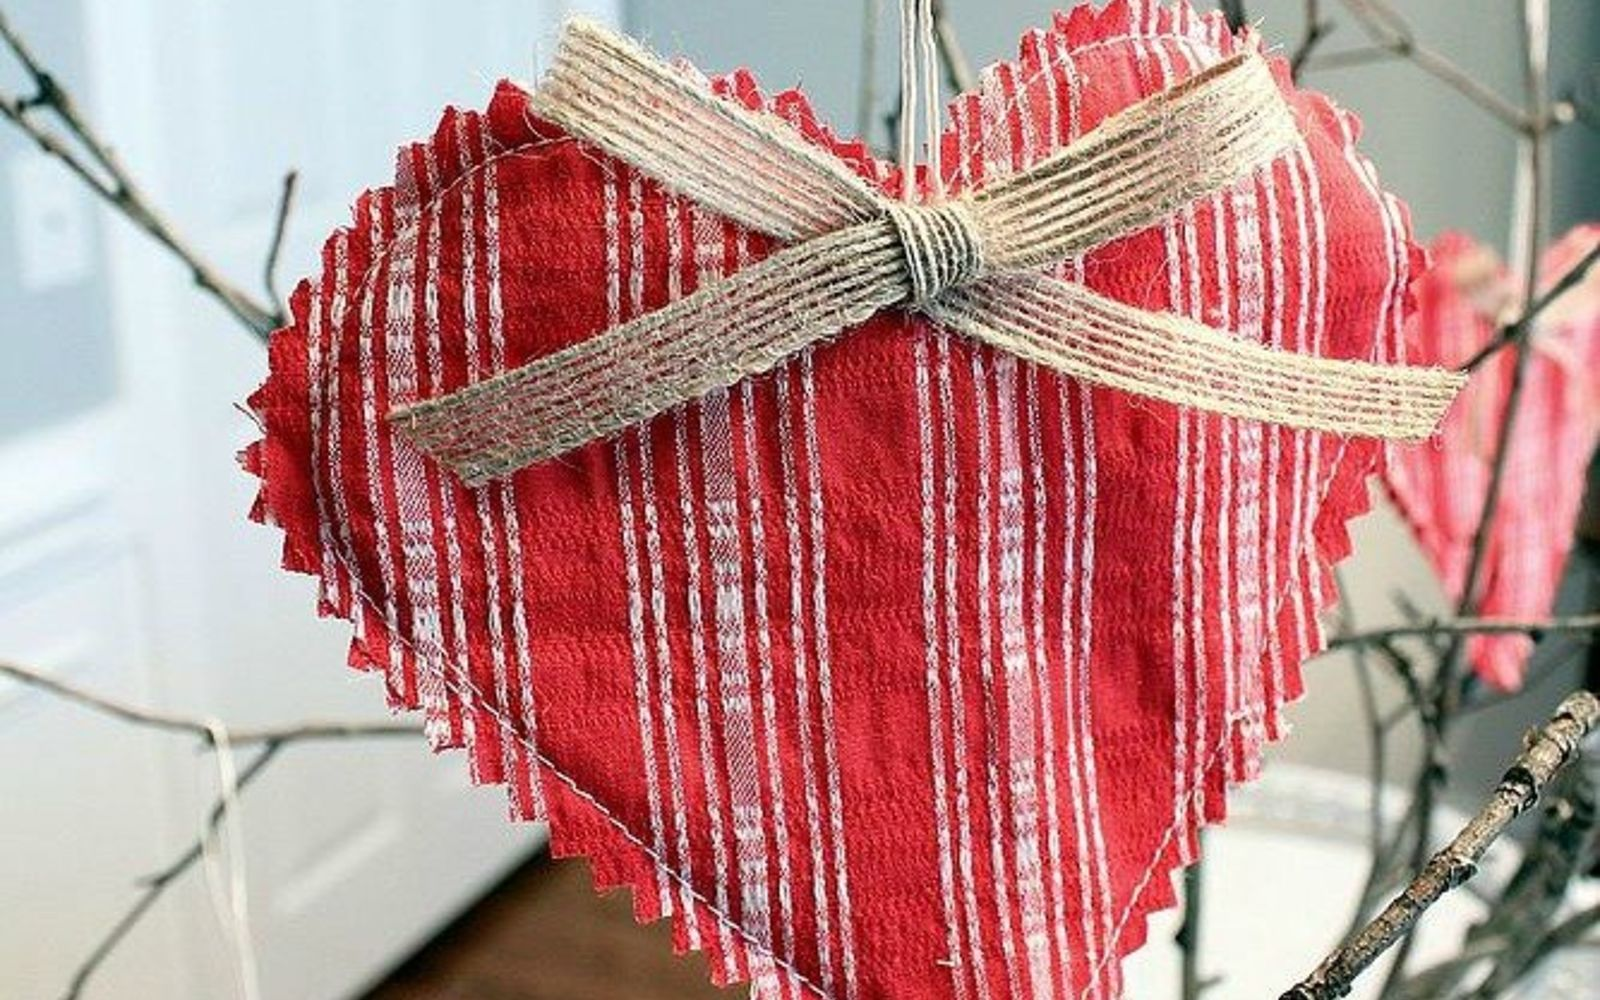 s 13 stunning vintage fabric ideas that ll send you to the thrift store, crafts, repurposing upcycling, reupholster, Scraps to Hanging Hearts